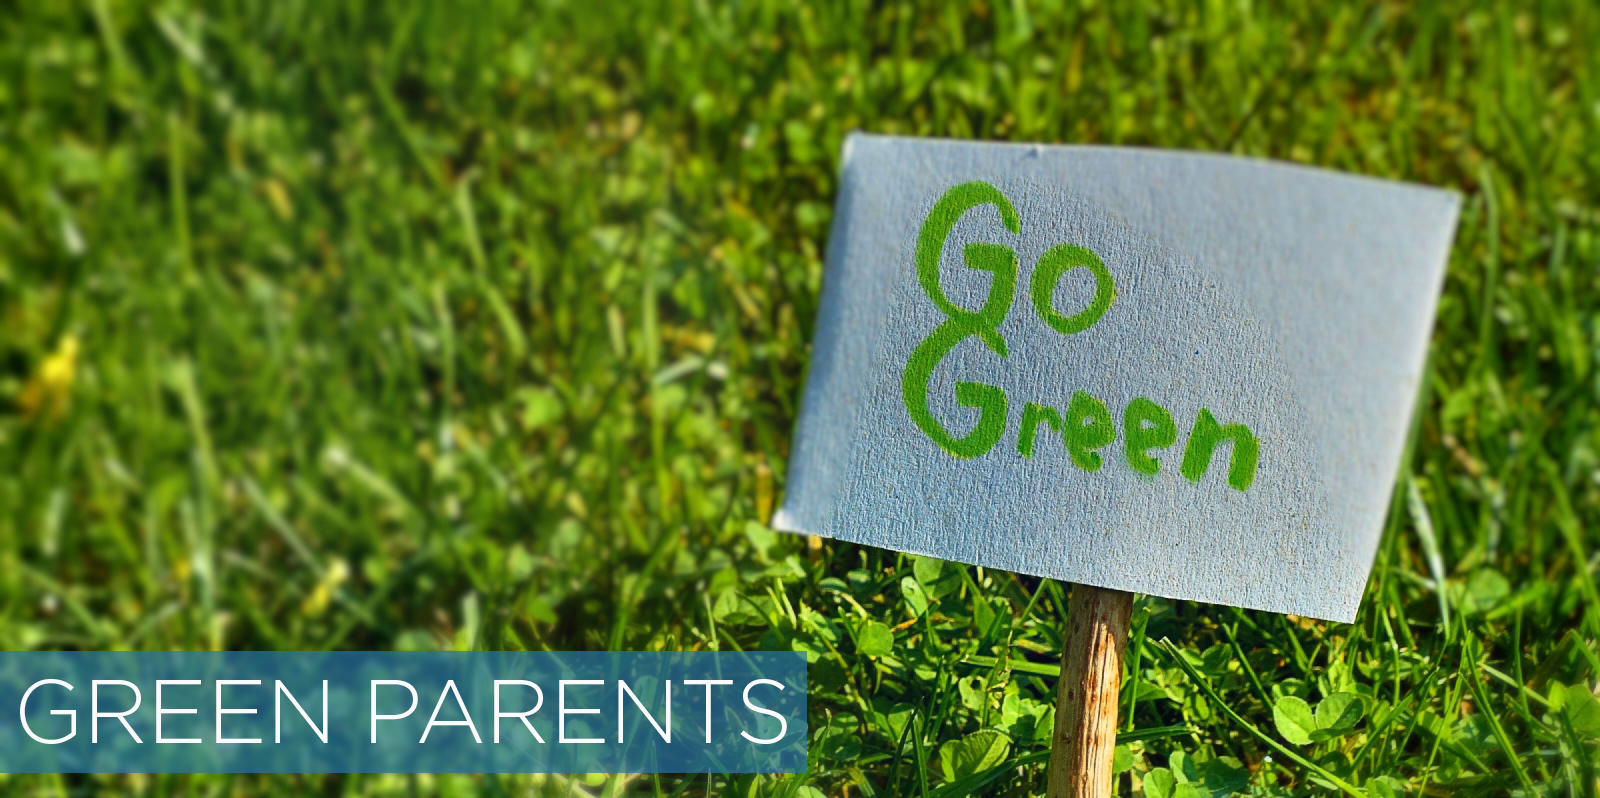 /home/templeis/public_html/images/header_image/1453249412header_imageLP_Green Parents.jpg.